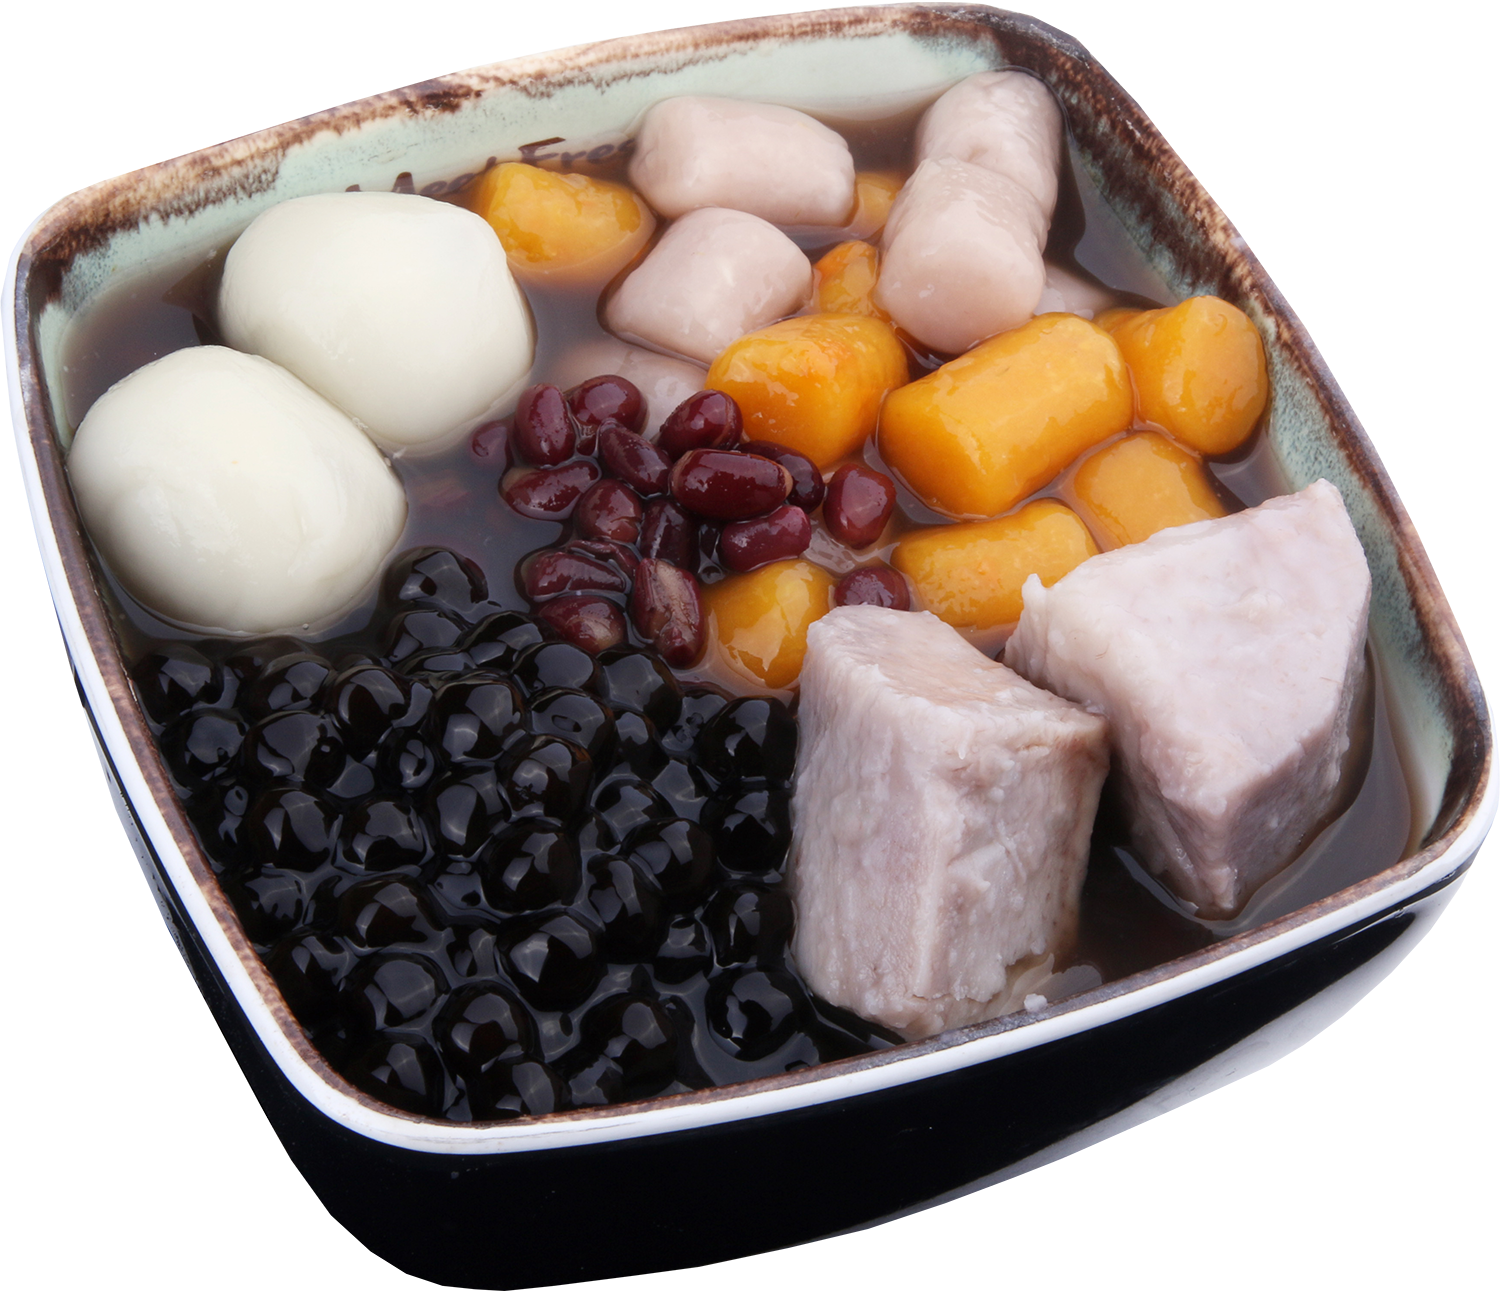 Hot Red Bean Soup Signature - Red Beans, Taro, Sesame Rice Balls, Taro Balls, Boba, Hot Red Bean Soup